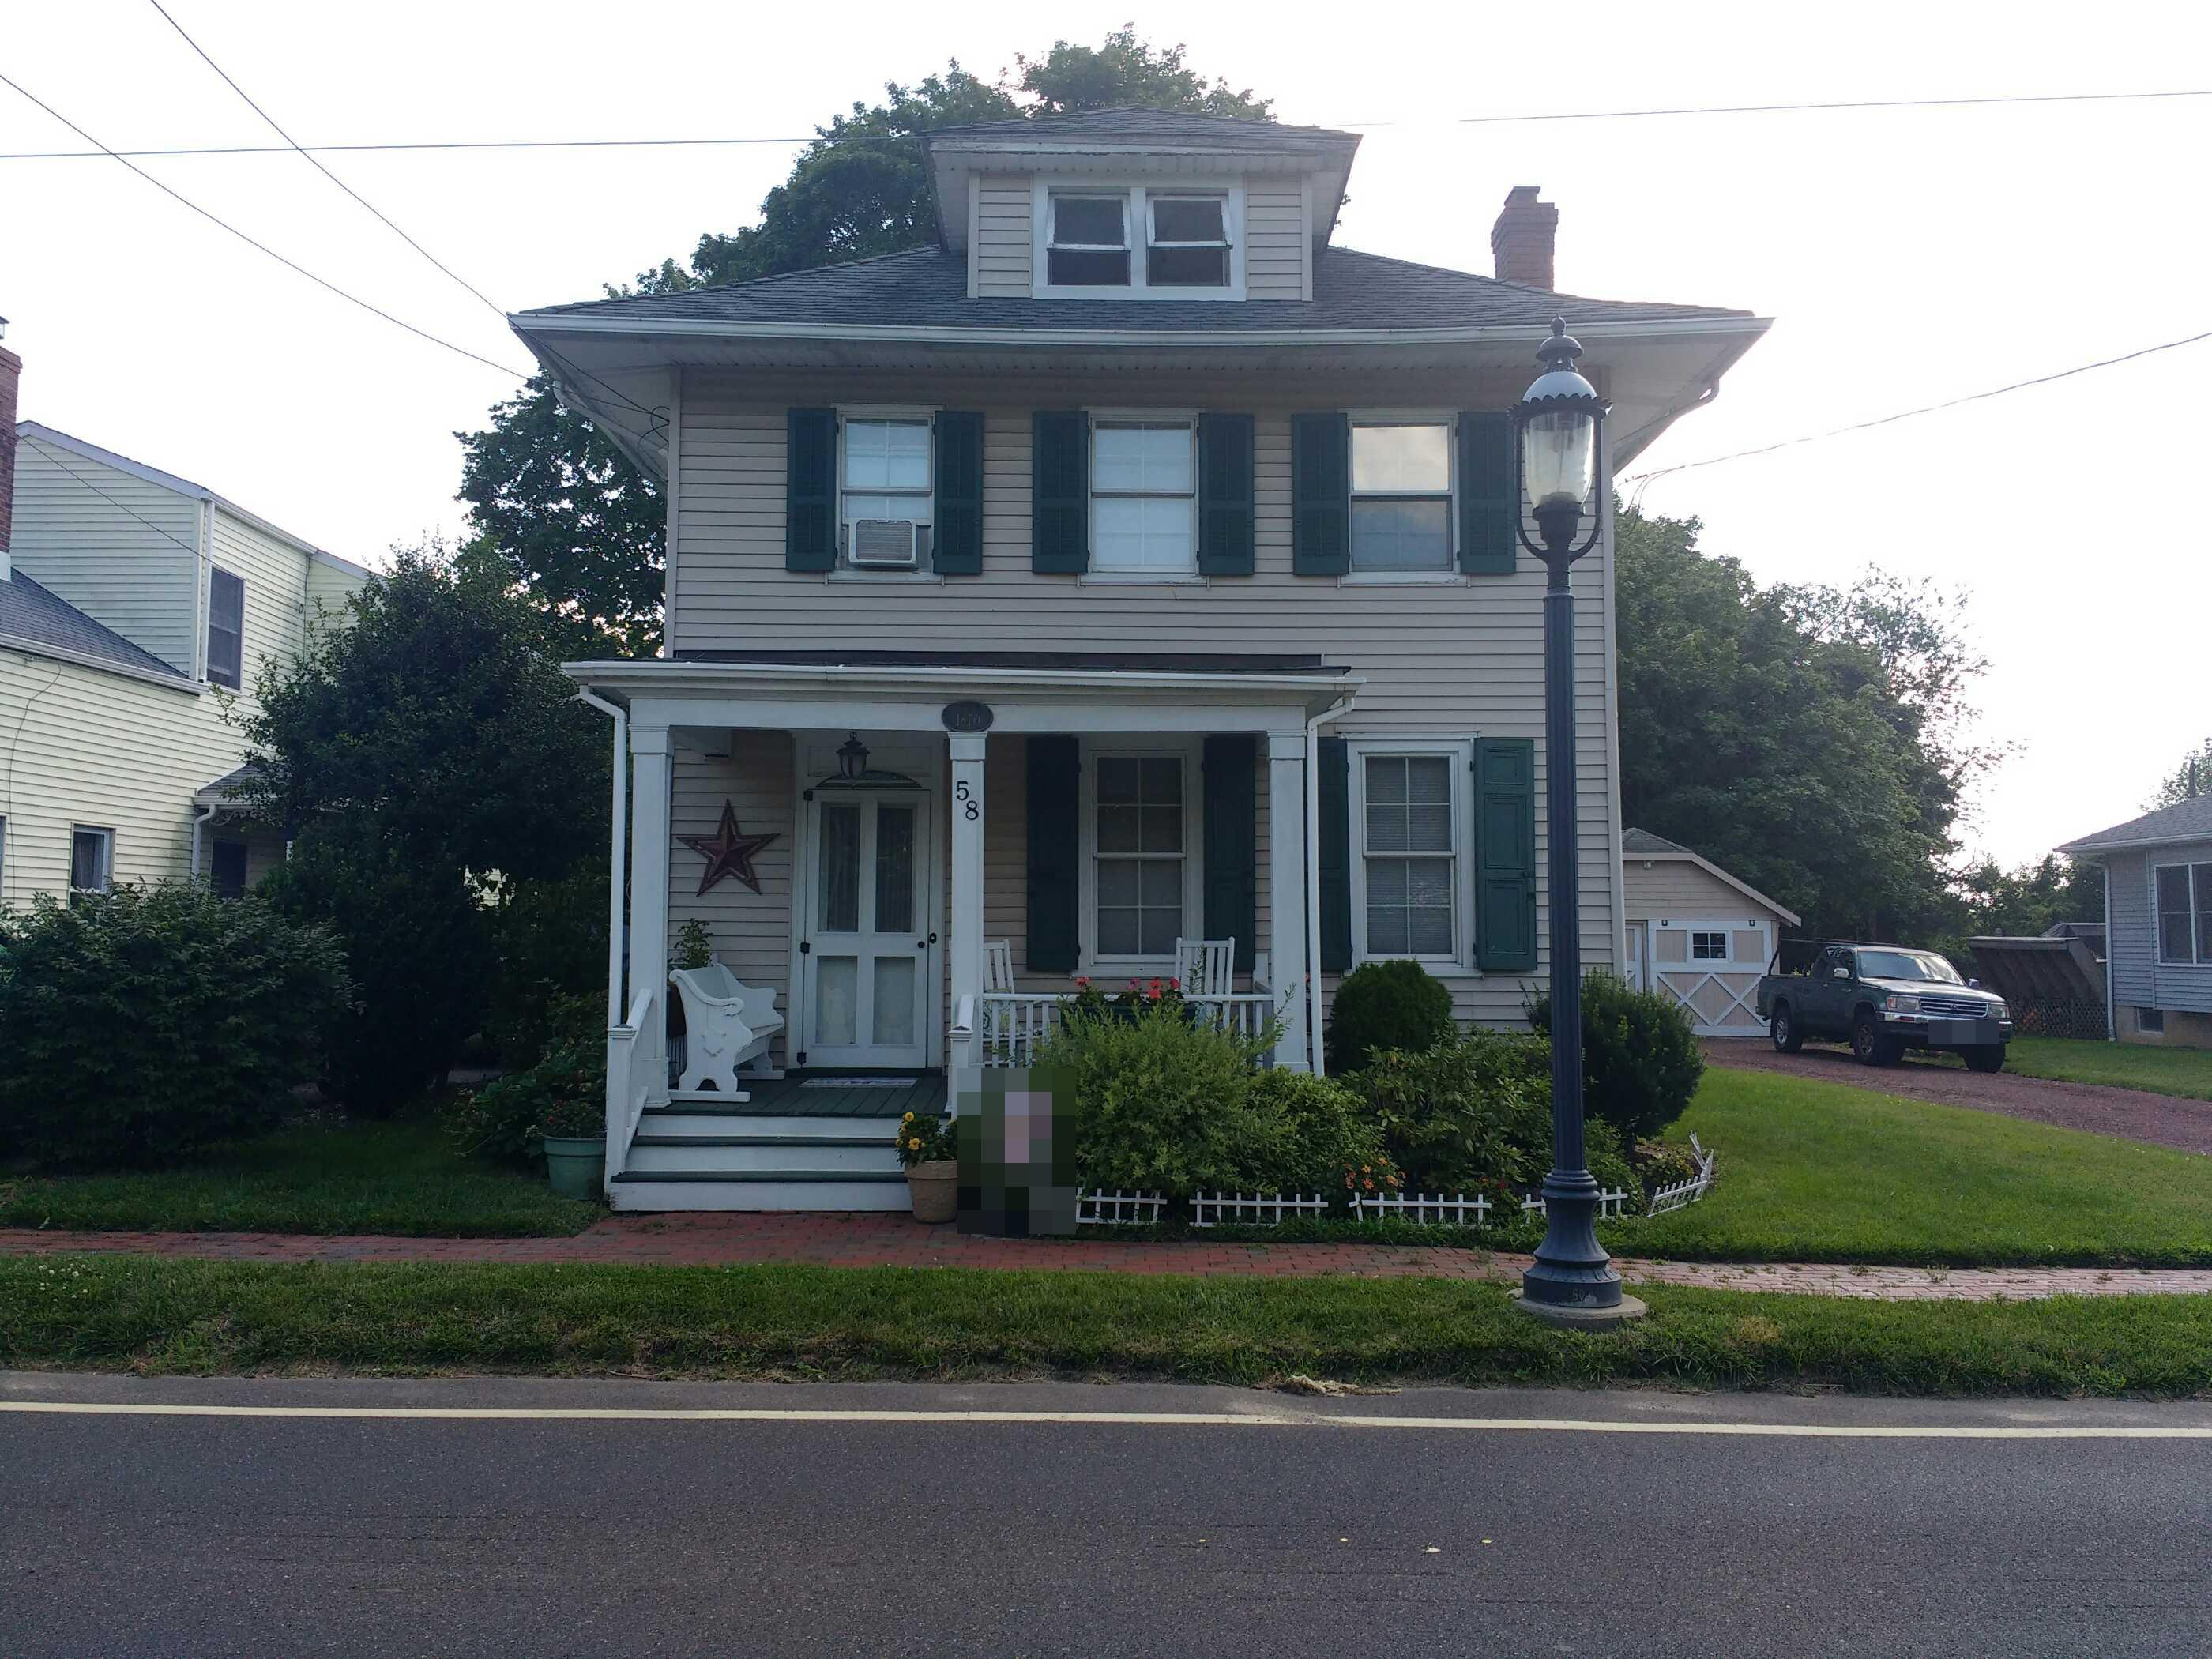 58 Church St, Windsor, NJ 08561